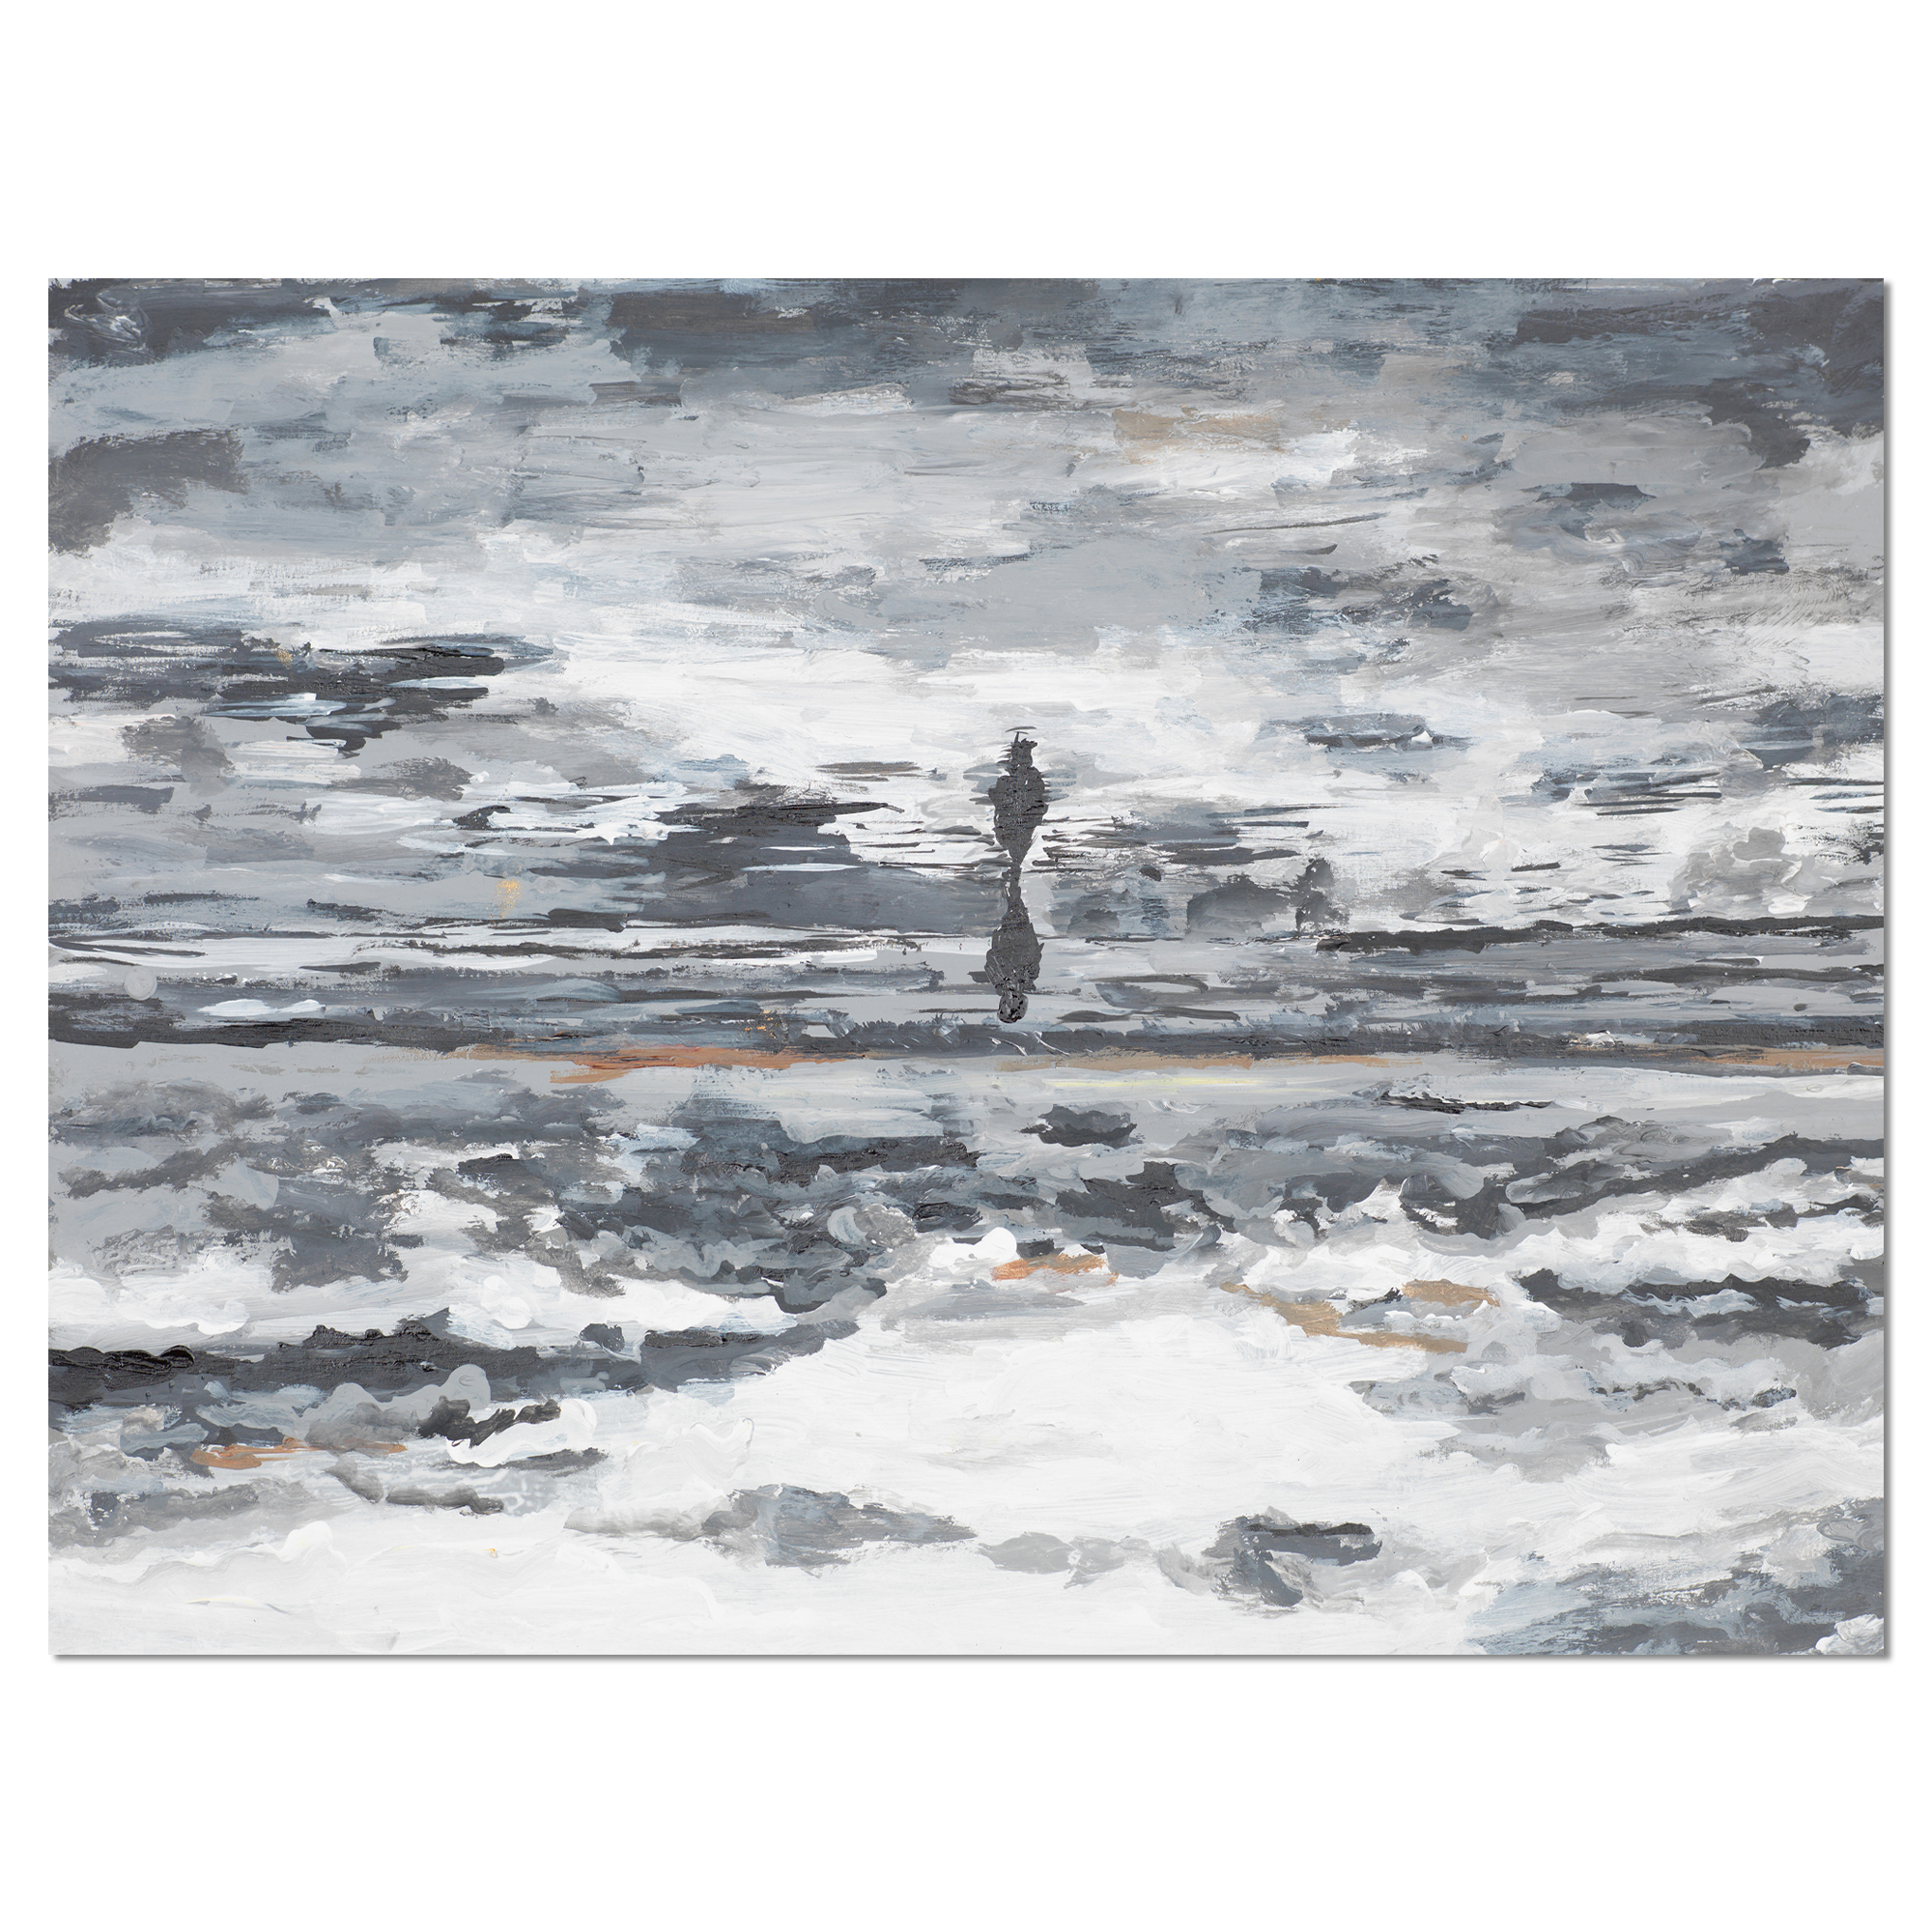 Running Horse Through Water - Abstract Canvas Painting - image 1 of 3